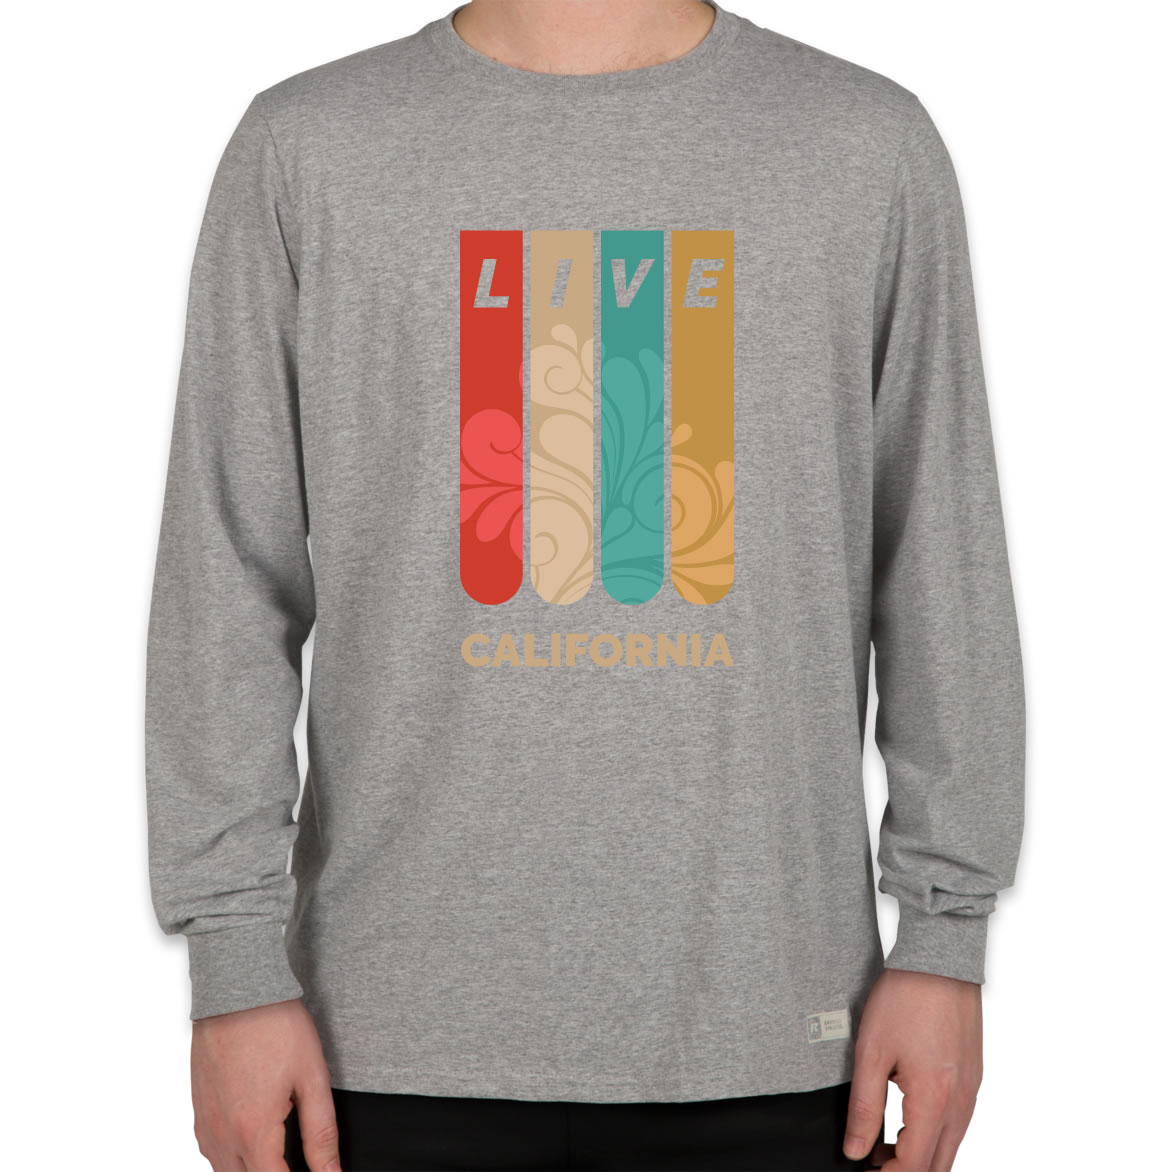 Men gym clothing boys long sleeve t shirt poly fabric with print on the front.